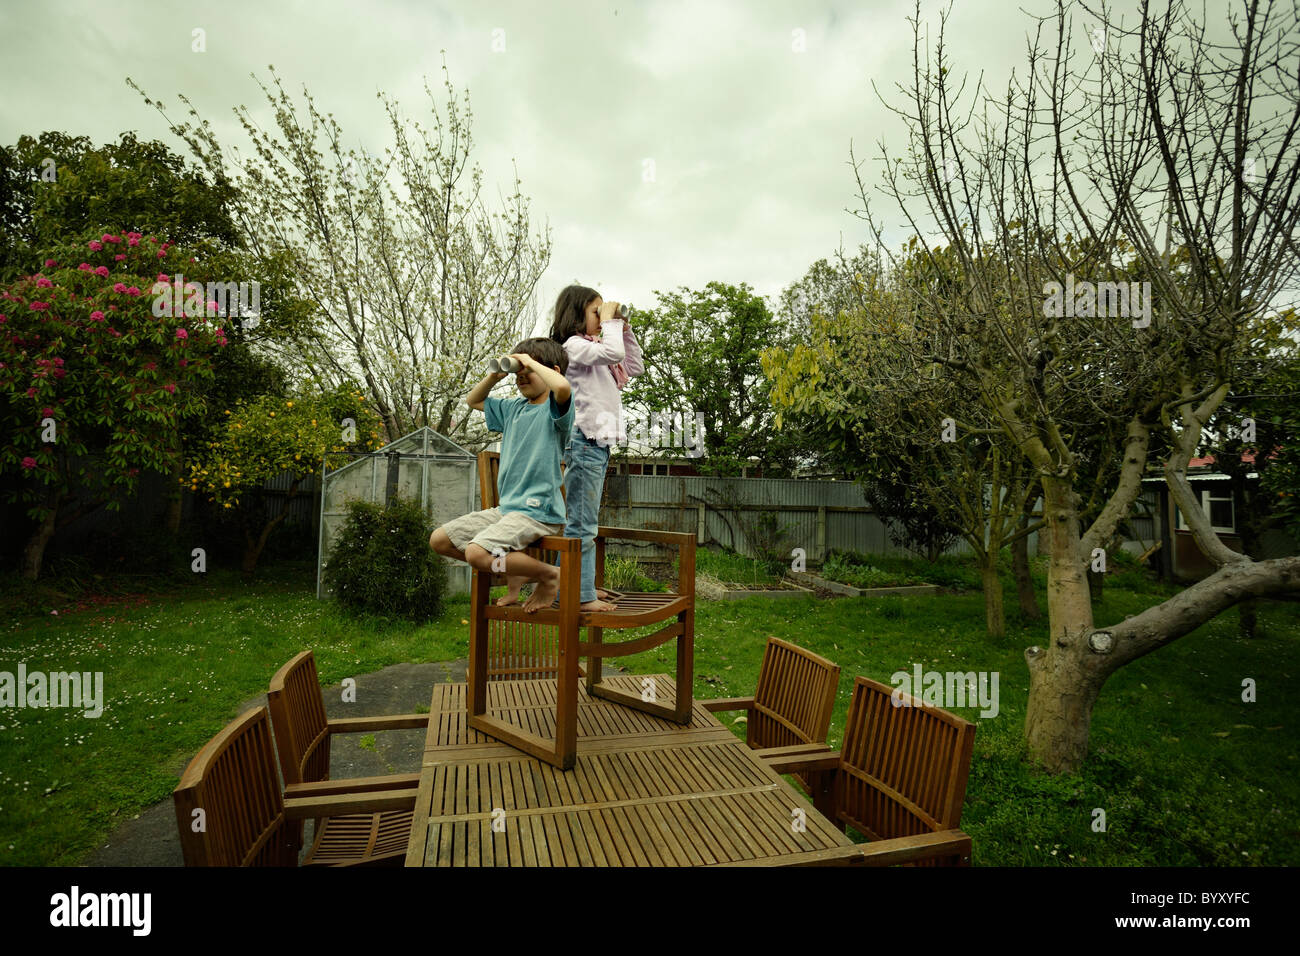 Boy and girl stand on chair on garden table, using cardboard tubes as pretend binoculars. - Stock Image